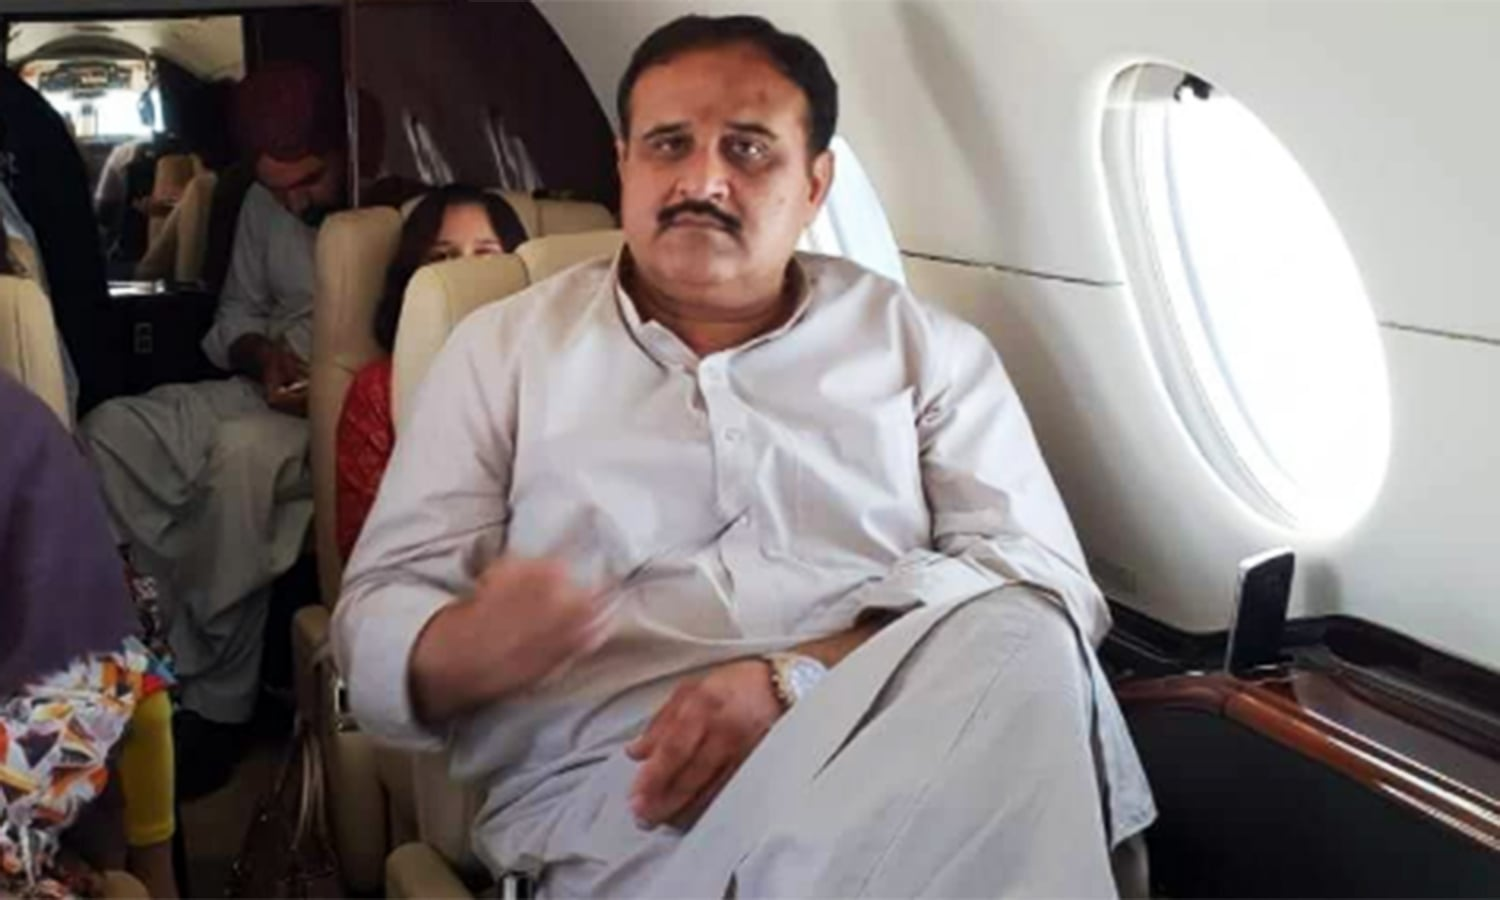 The photo of Punjab Chief Minister Usman Buzdar and his family members aboard a private plane surfaced on social media on Tuesday.